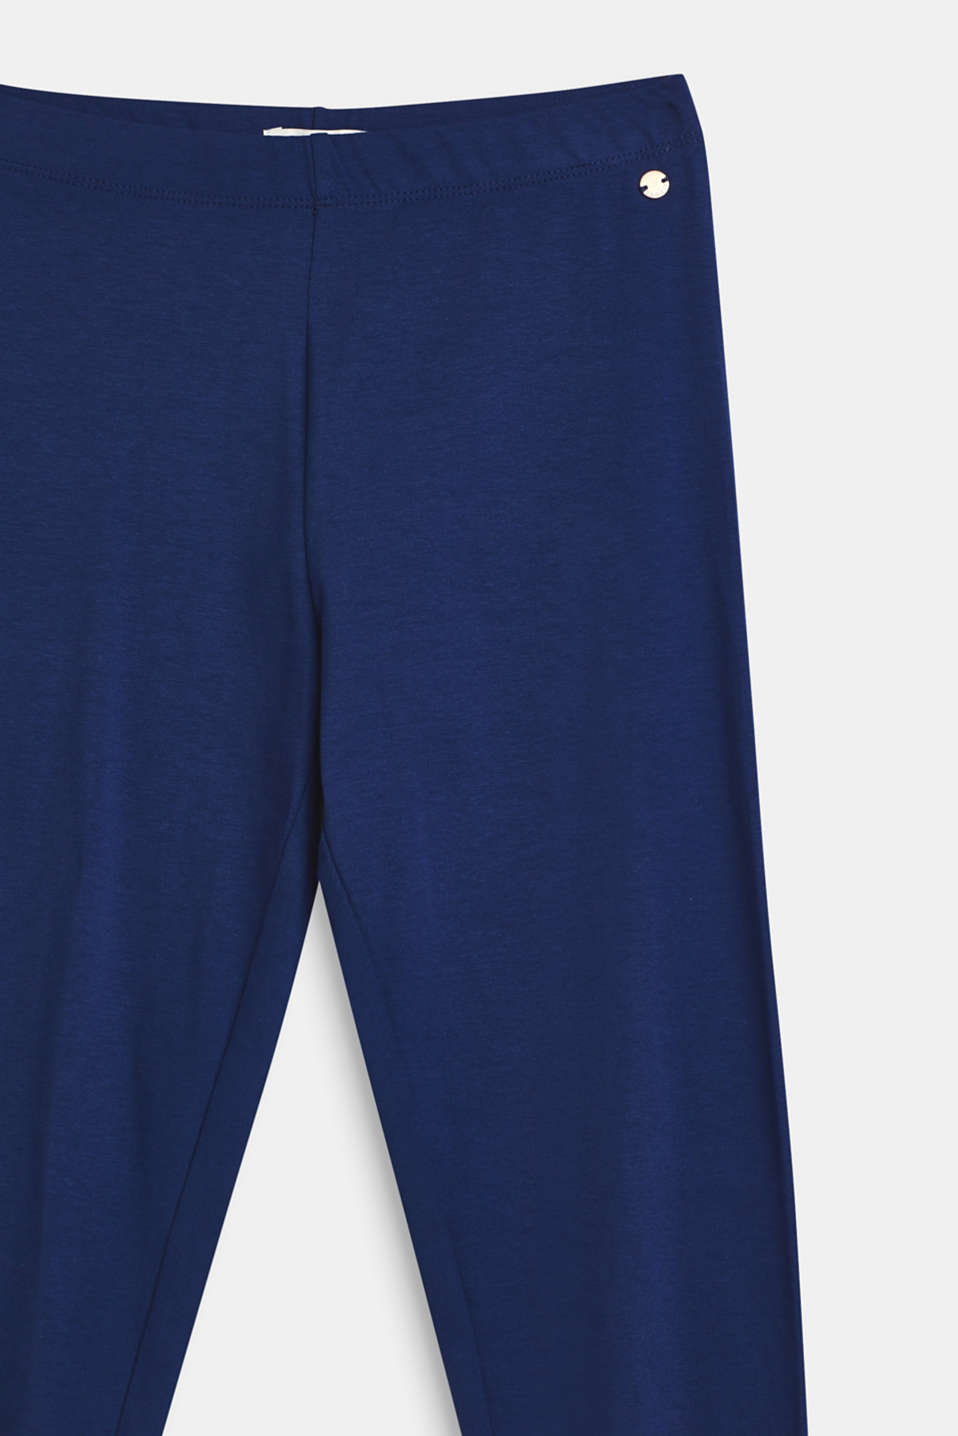 Pants knitted, LCMARINE BLUE, detail image number 2